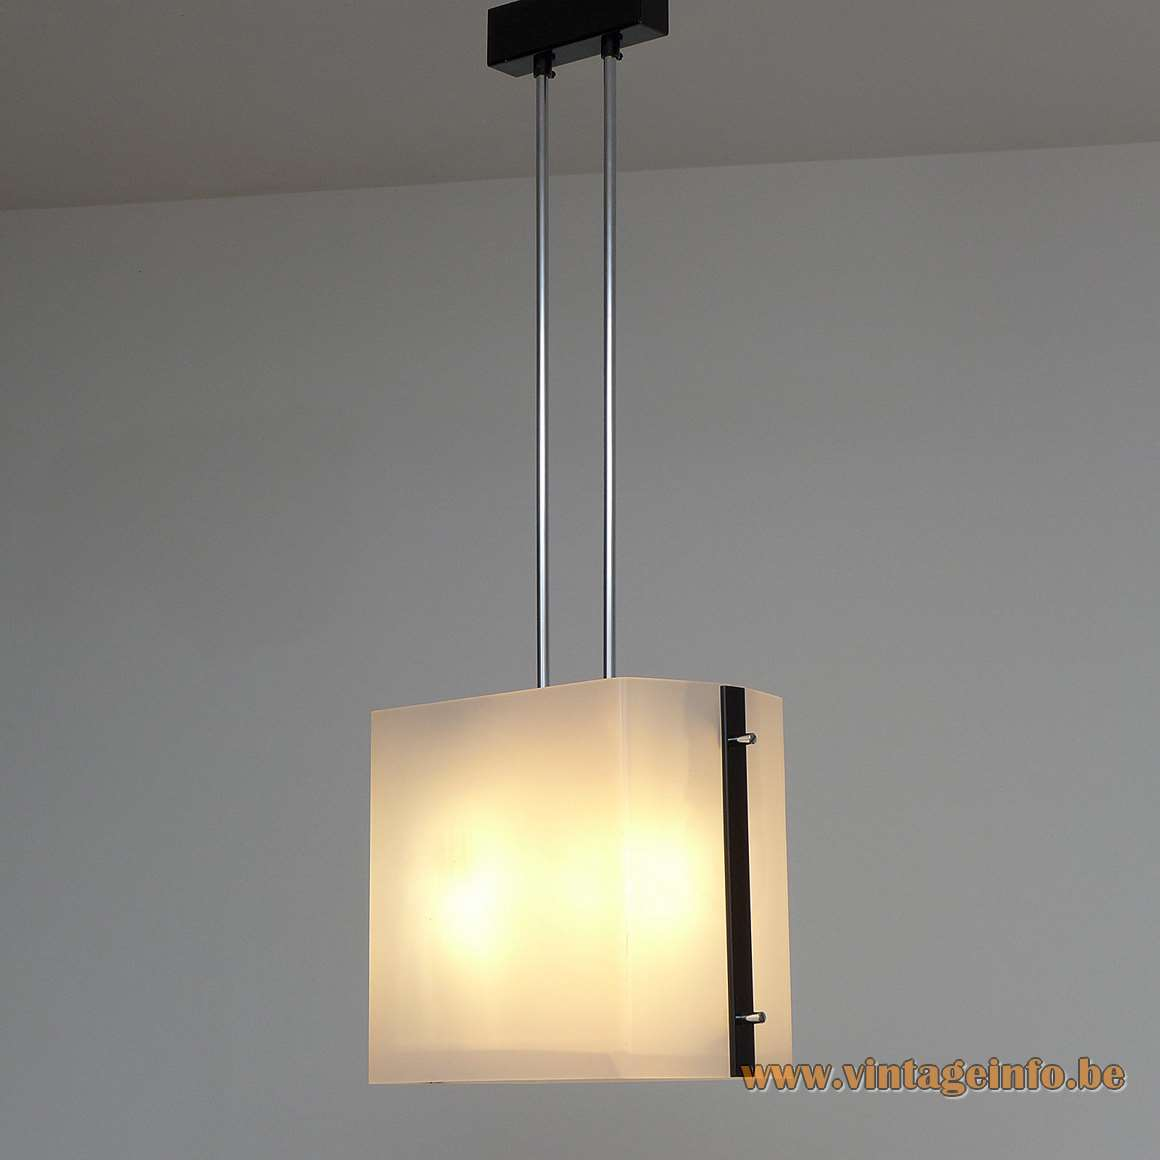 Lidokov acrylic pendant lamp white Perspex 2 chrome rods chrome ornamental screws Czech Republic 1960s 1970s Mid-Century Modern